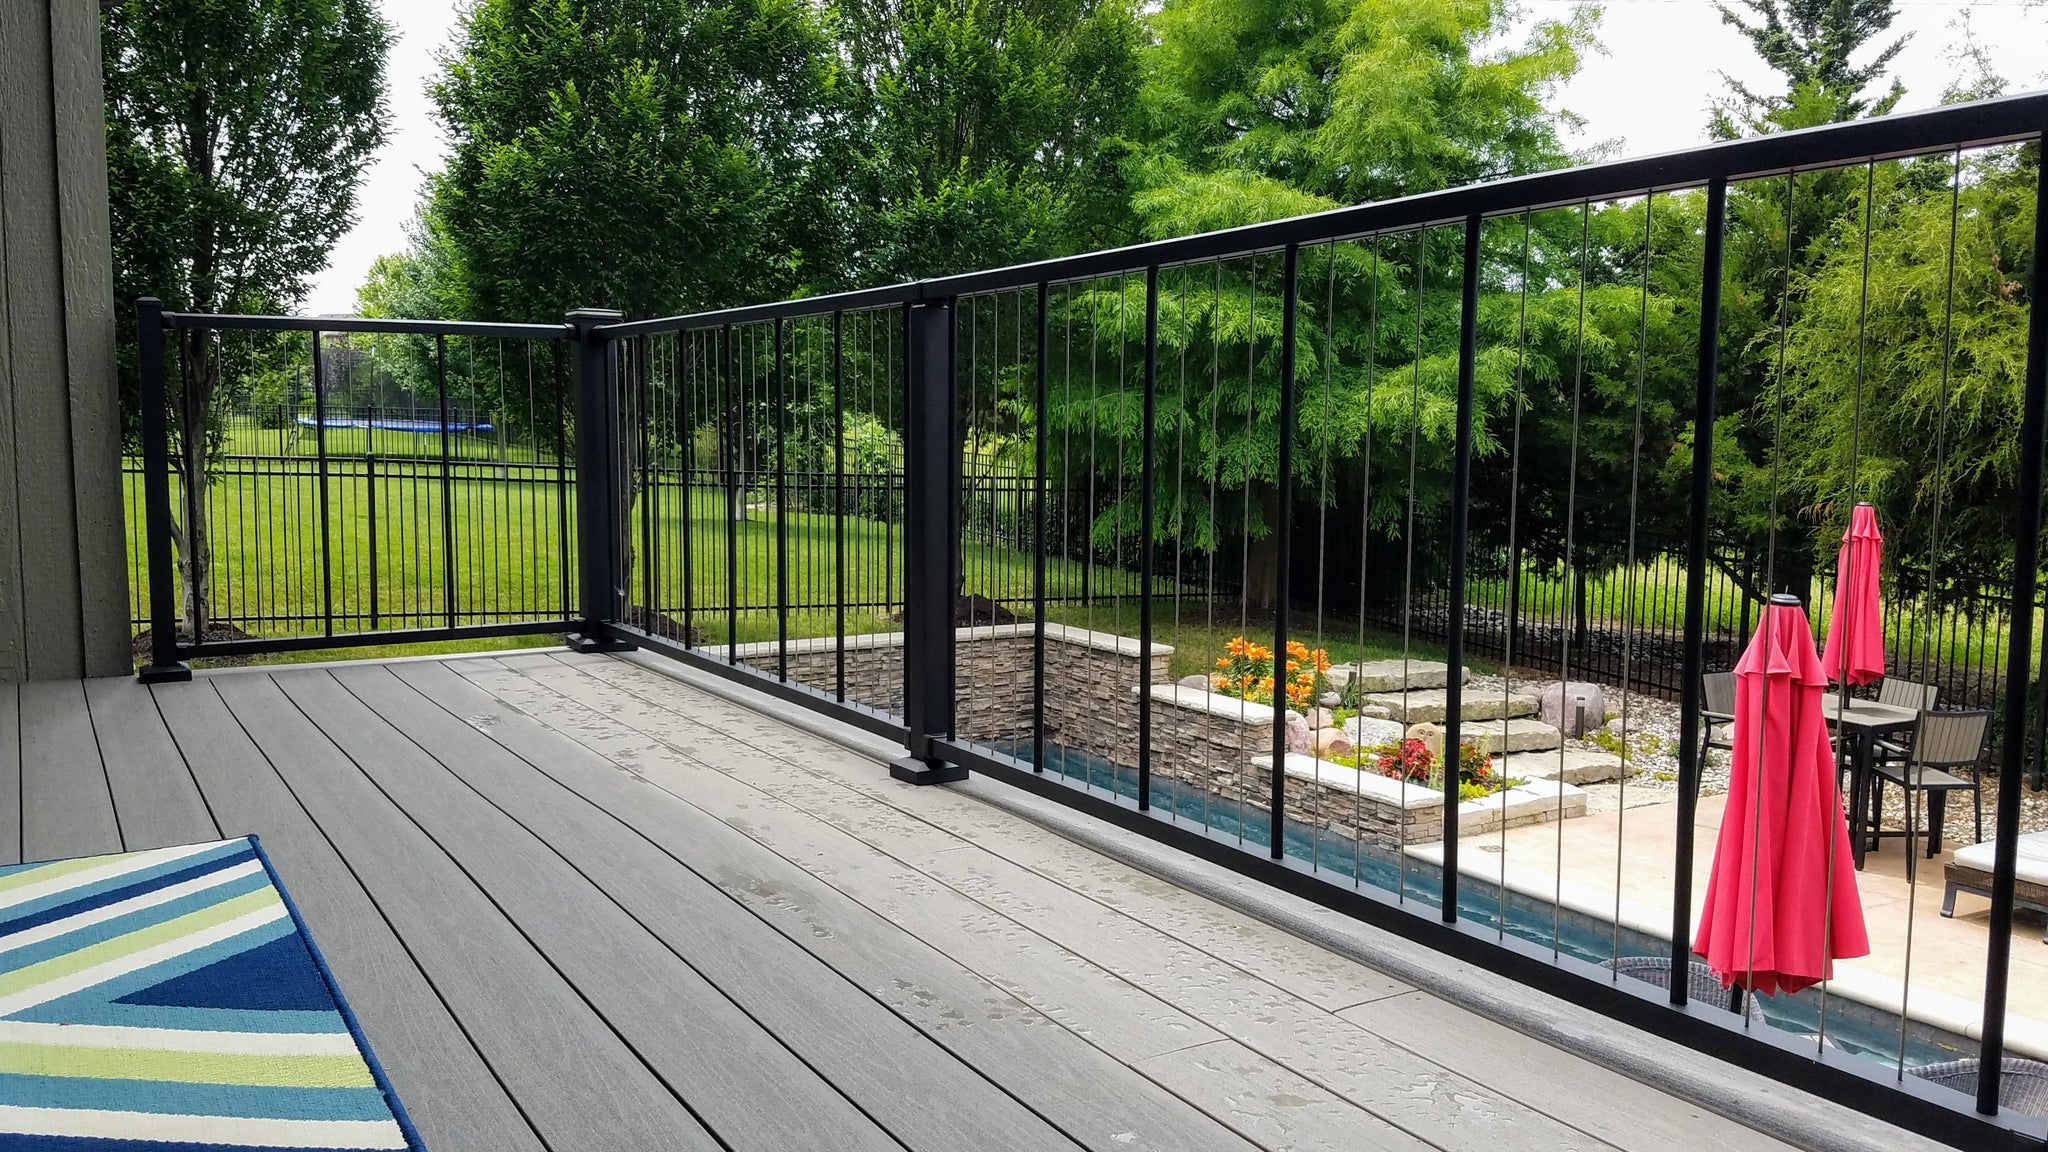 Vertical Cable Railing or Verticable is a railing system producted and manufactured by digger specialites. Westbury C80 is an affordable, easy-to-install railing system